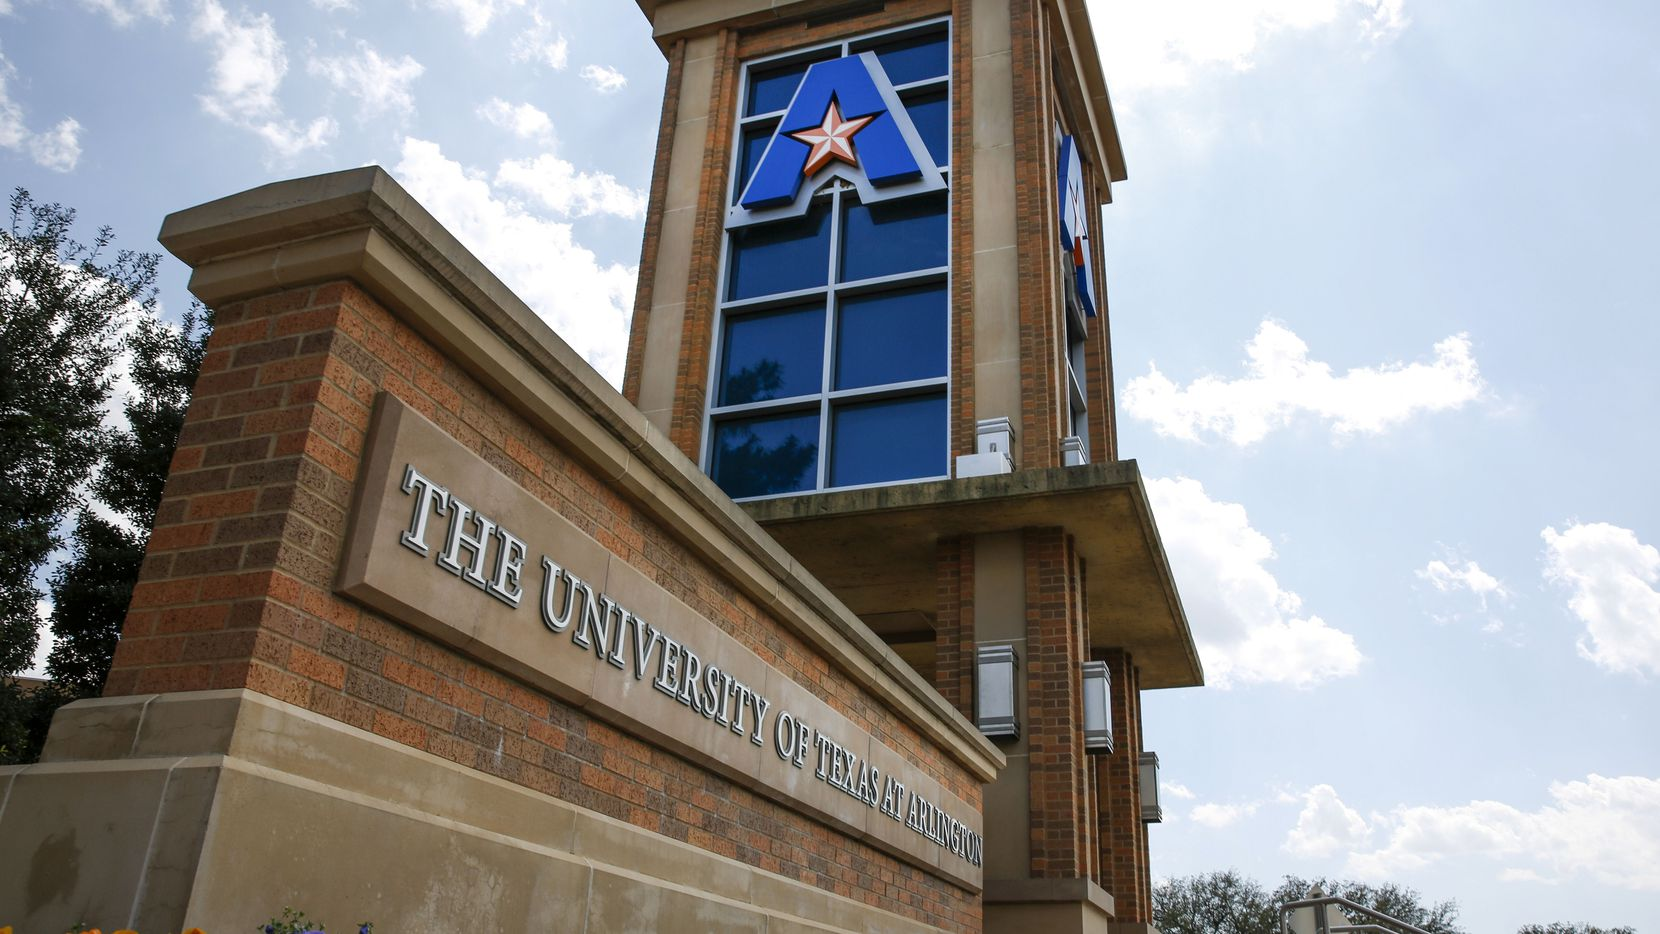 University of Texas Arlington on April 4, 2019 in Arlington, Texas.